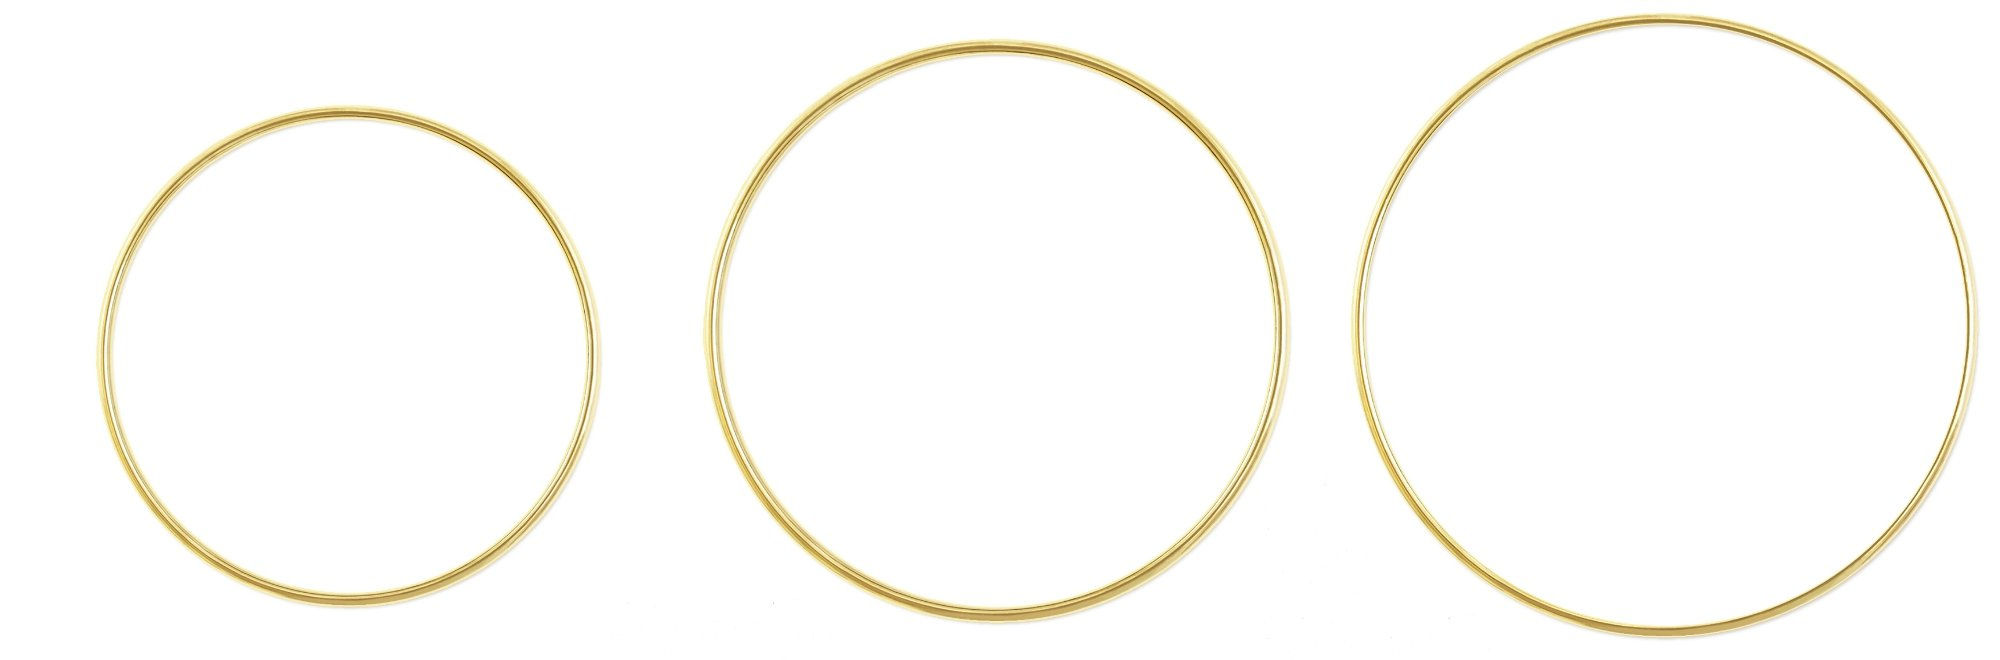 Metal Rings For Craft - Metal Rings Hoops - Macrame Dream catcher Floral Jewelry Making Brass Rings - CraftMedley (1x 8in + 1x 12in + 1x 14in) - Large, Round, Brass